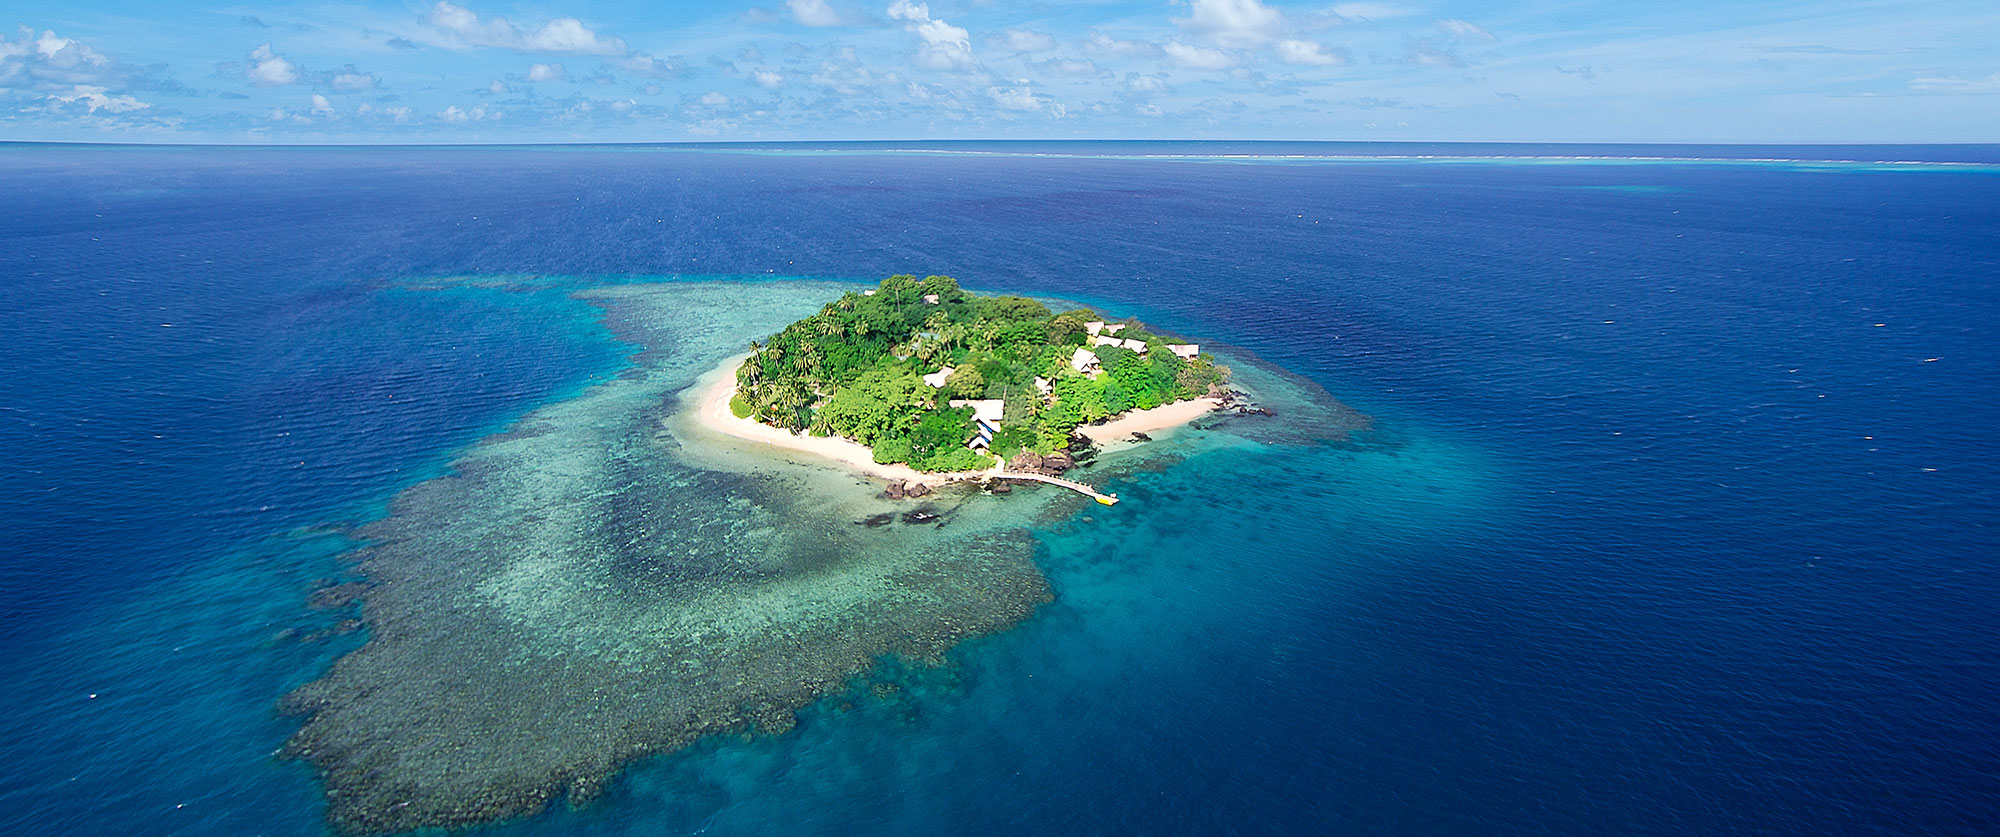 Royal Davui Island Fiji - Travel - Diving - Fiji Travel